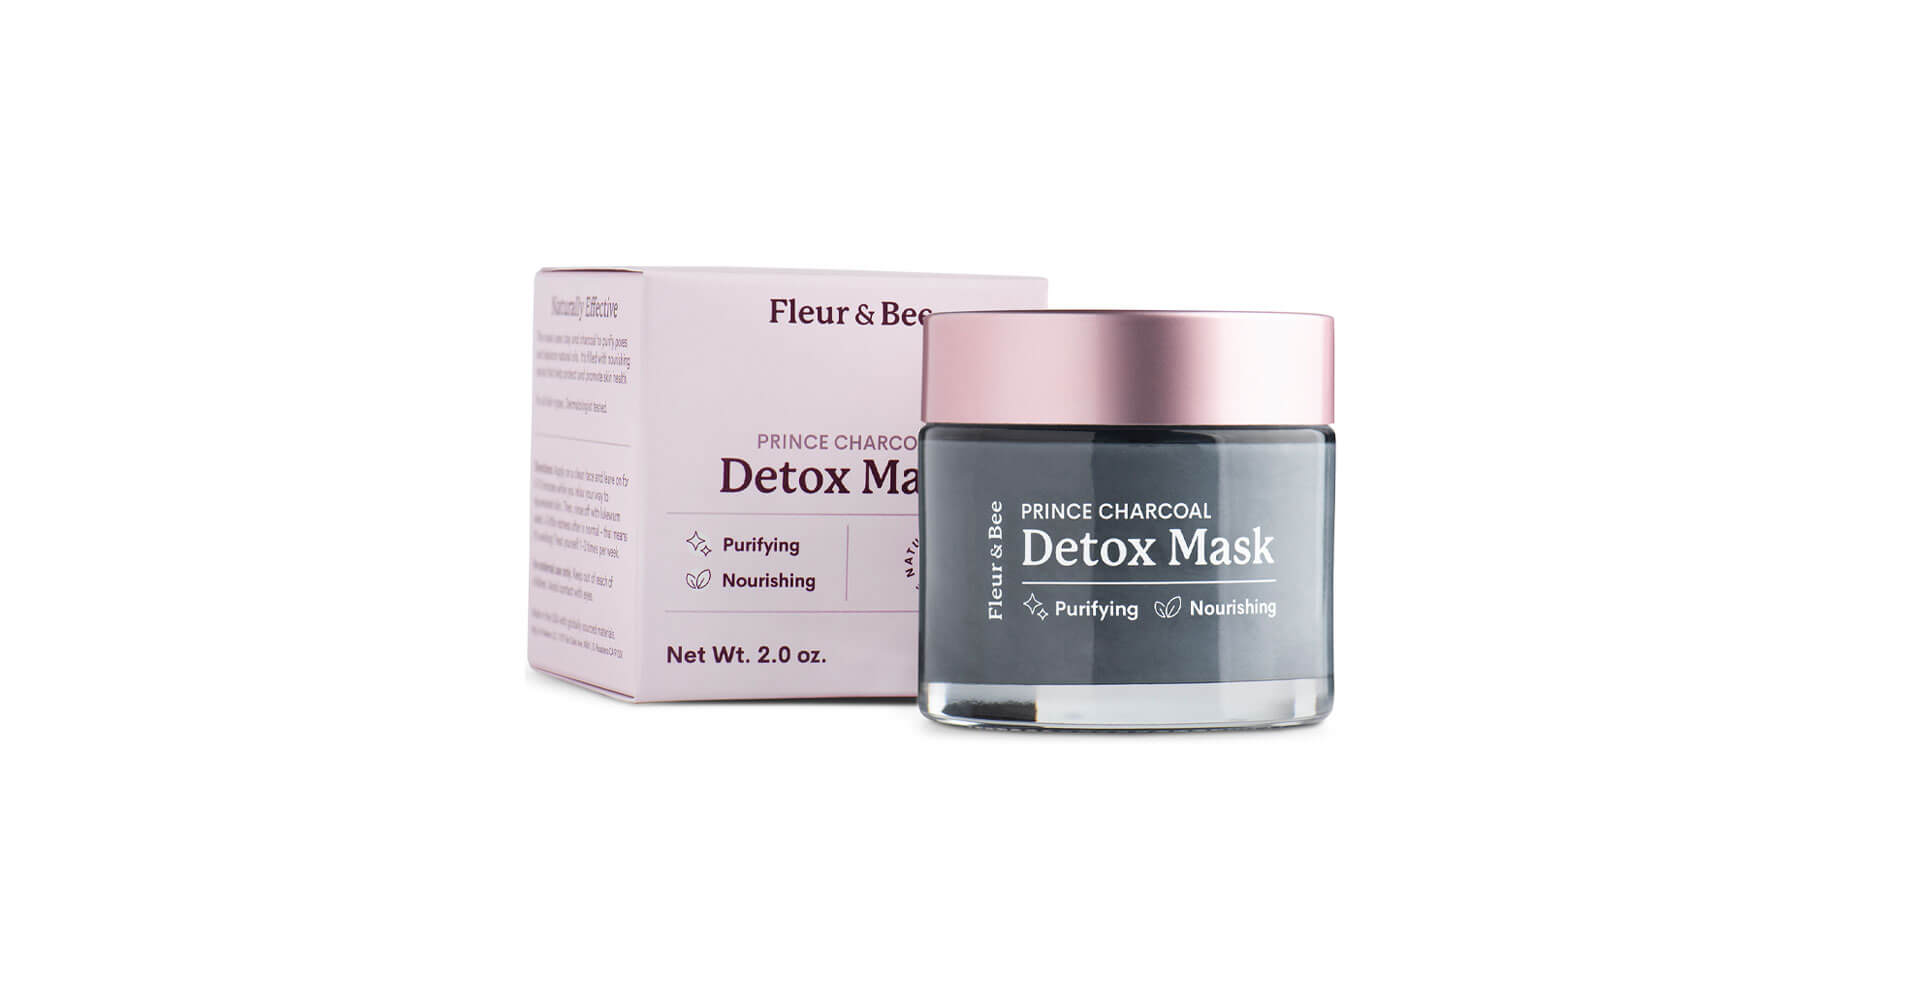 Fleur and Bee's Prince Charcoal Detox Mask